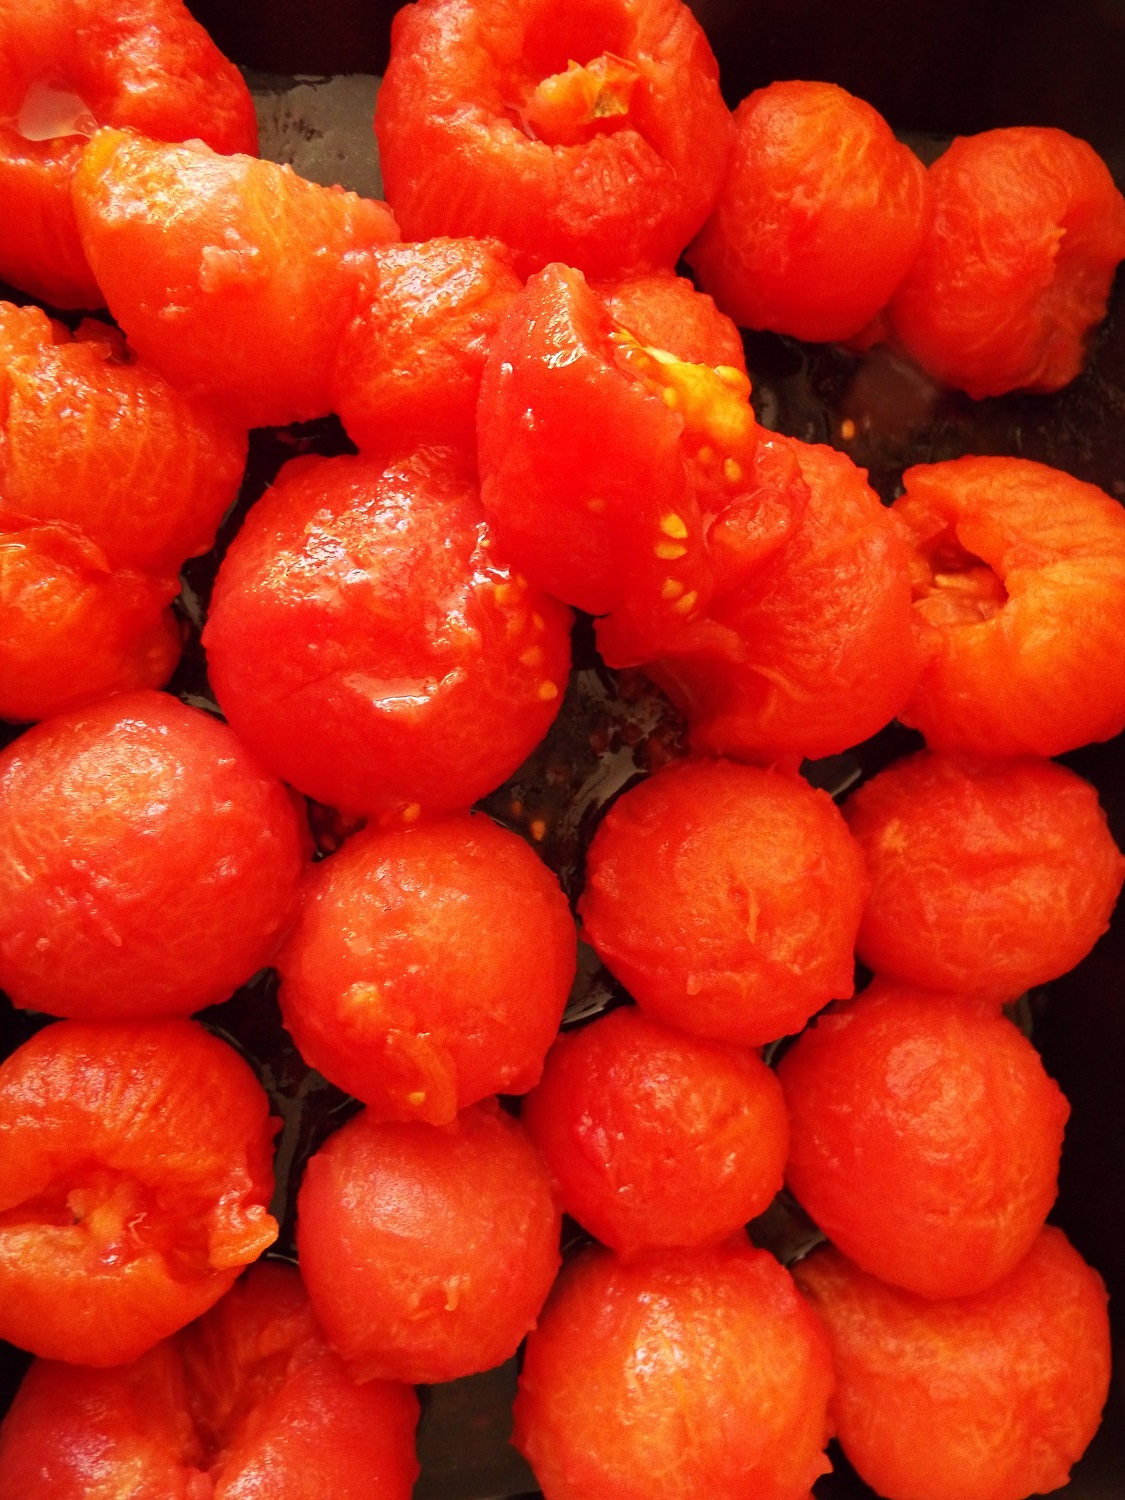 Preserving a Tomato Glut - Blanch, Peel, and Freeze - Don't waste them - freeze them